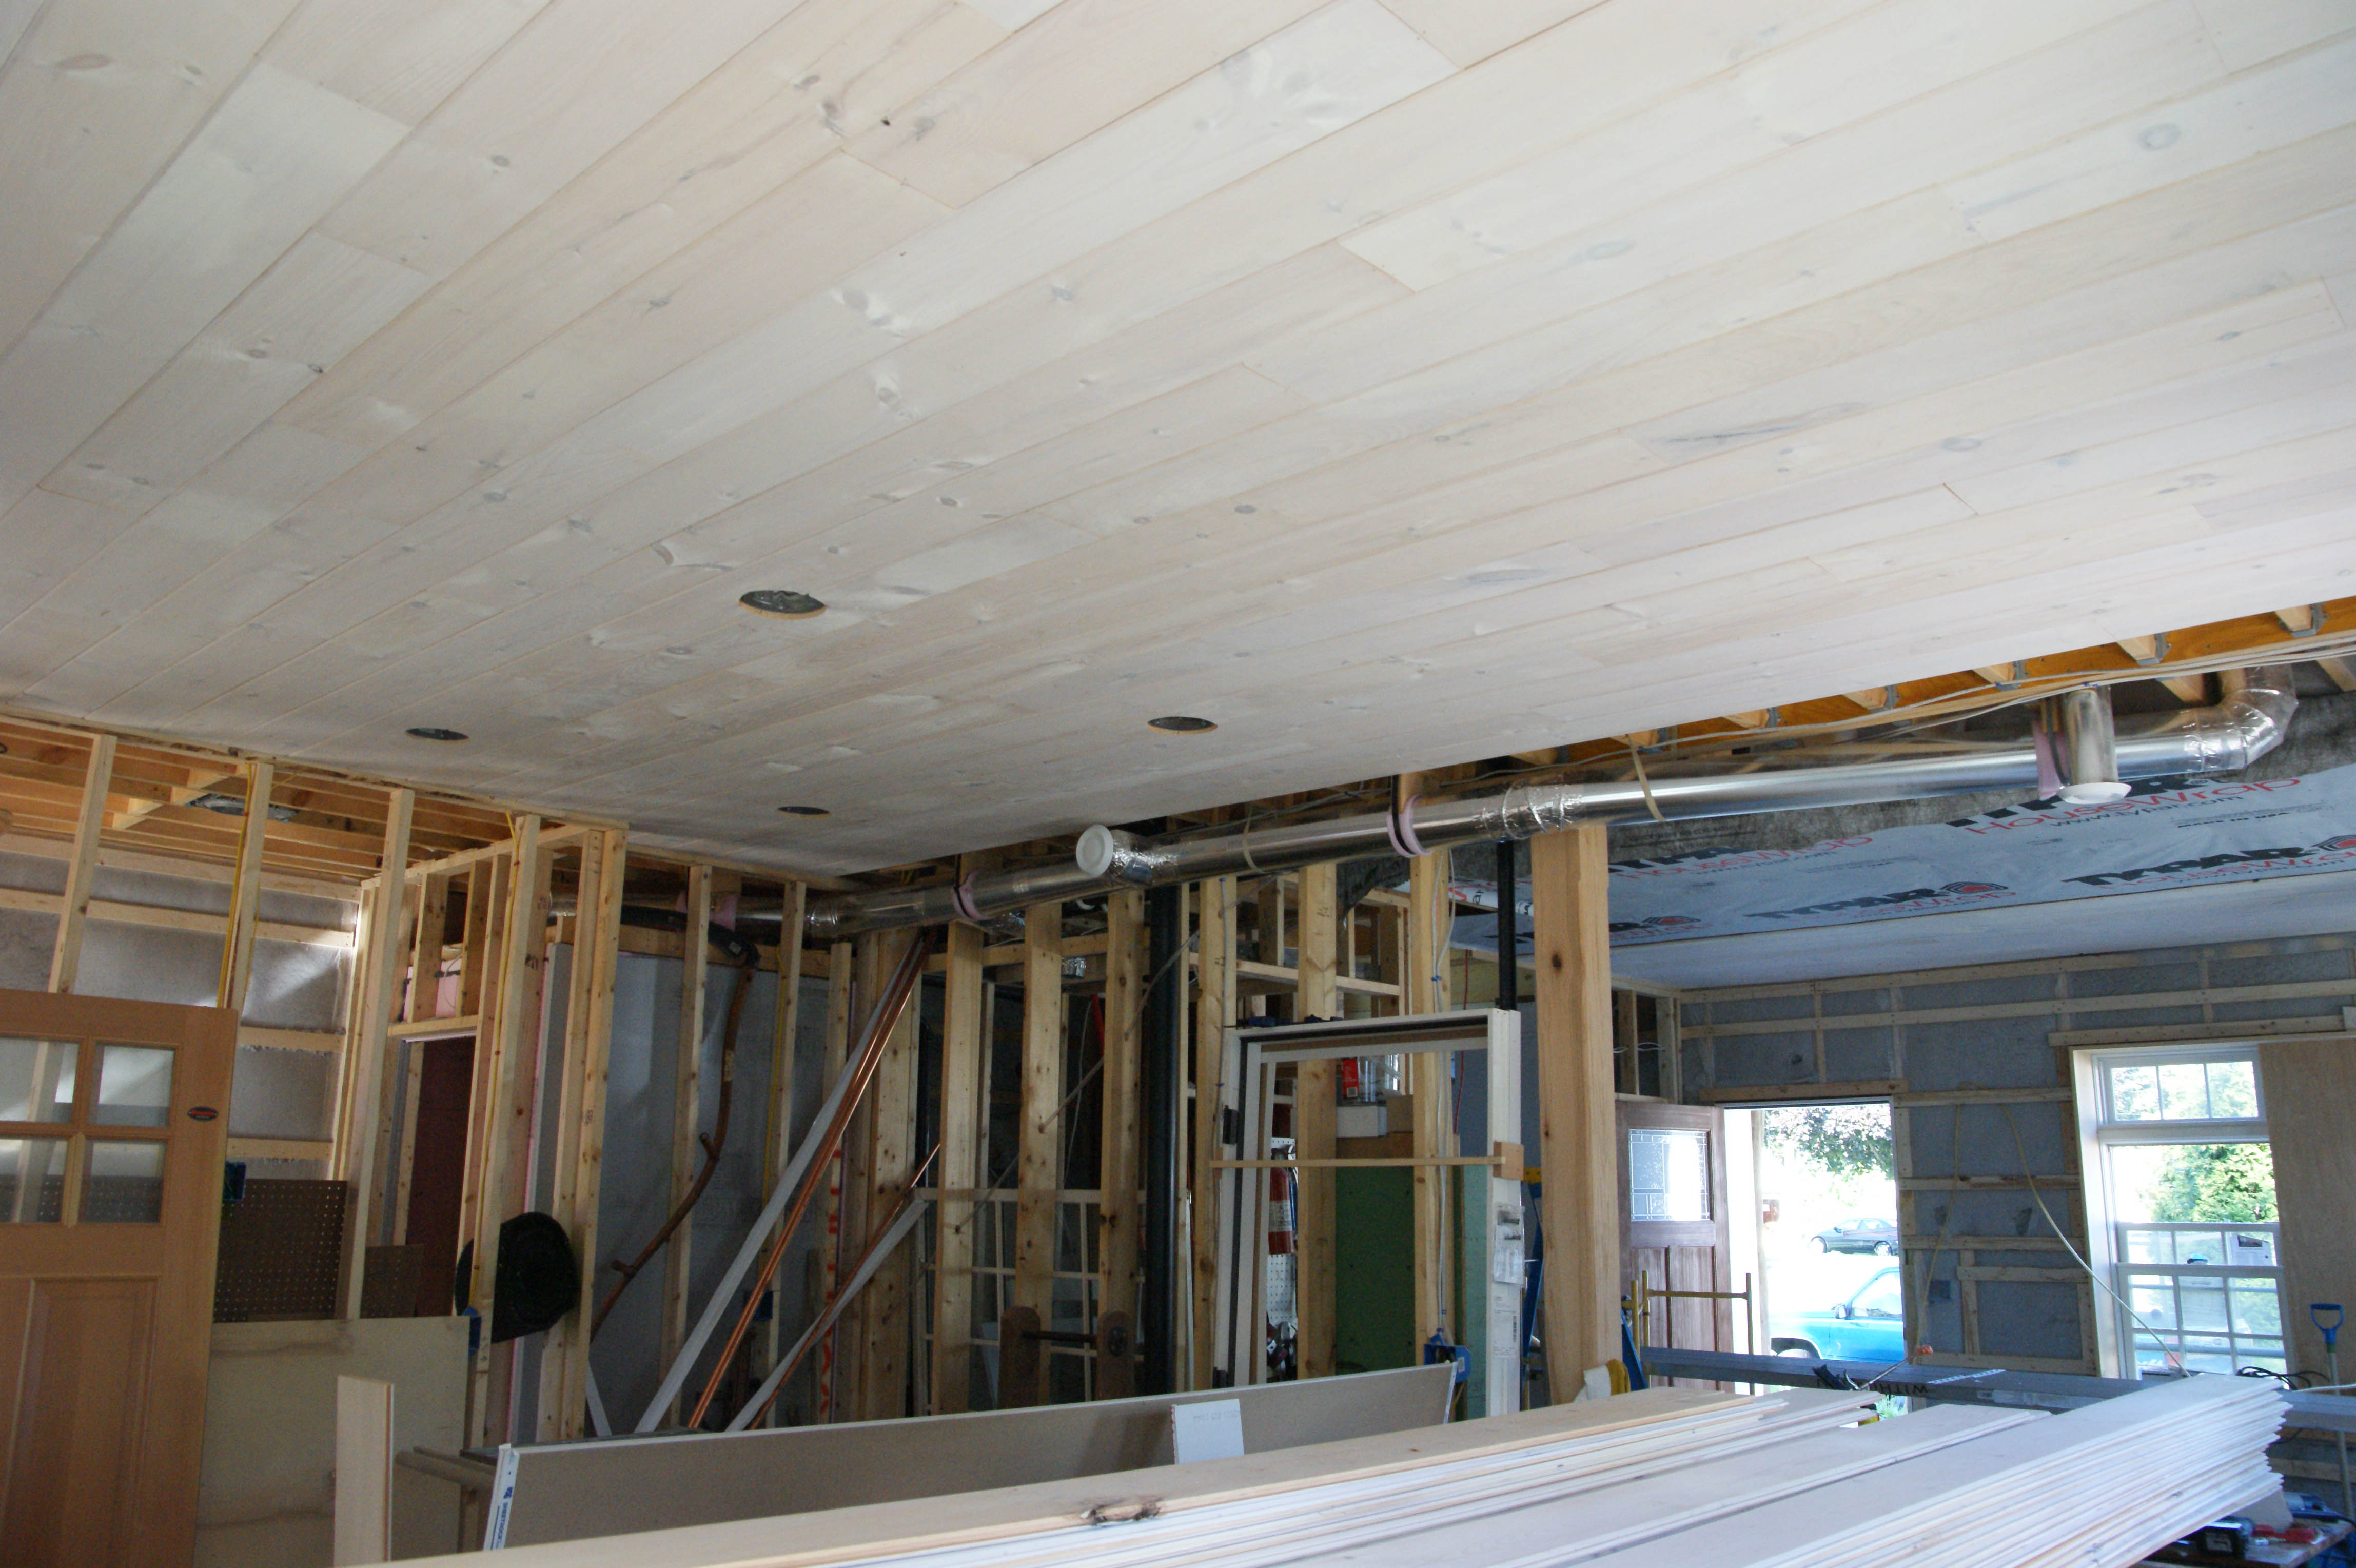 Ceilings and drywall | Design & Construction of Spartan & Hannah's Home